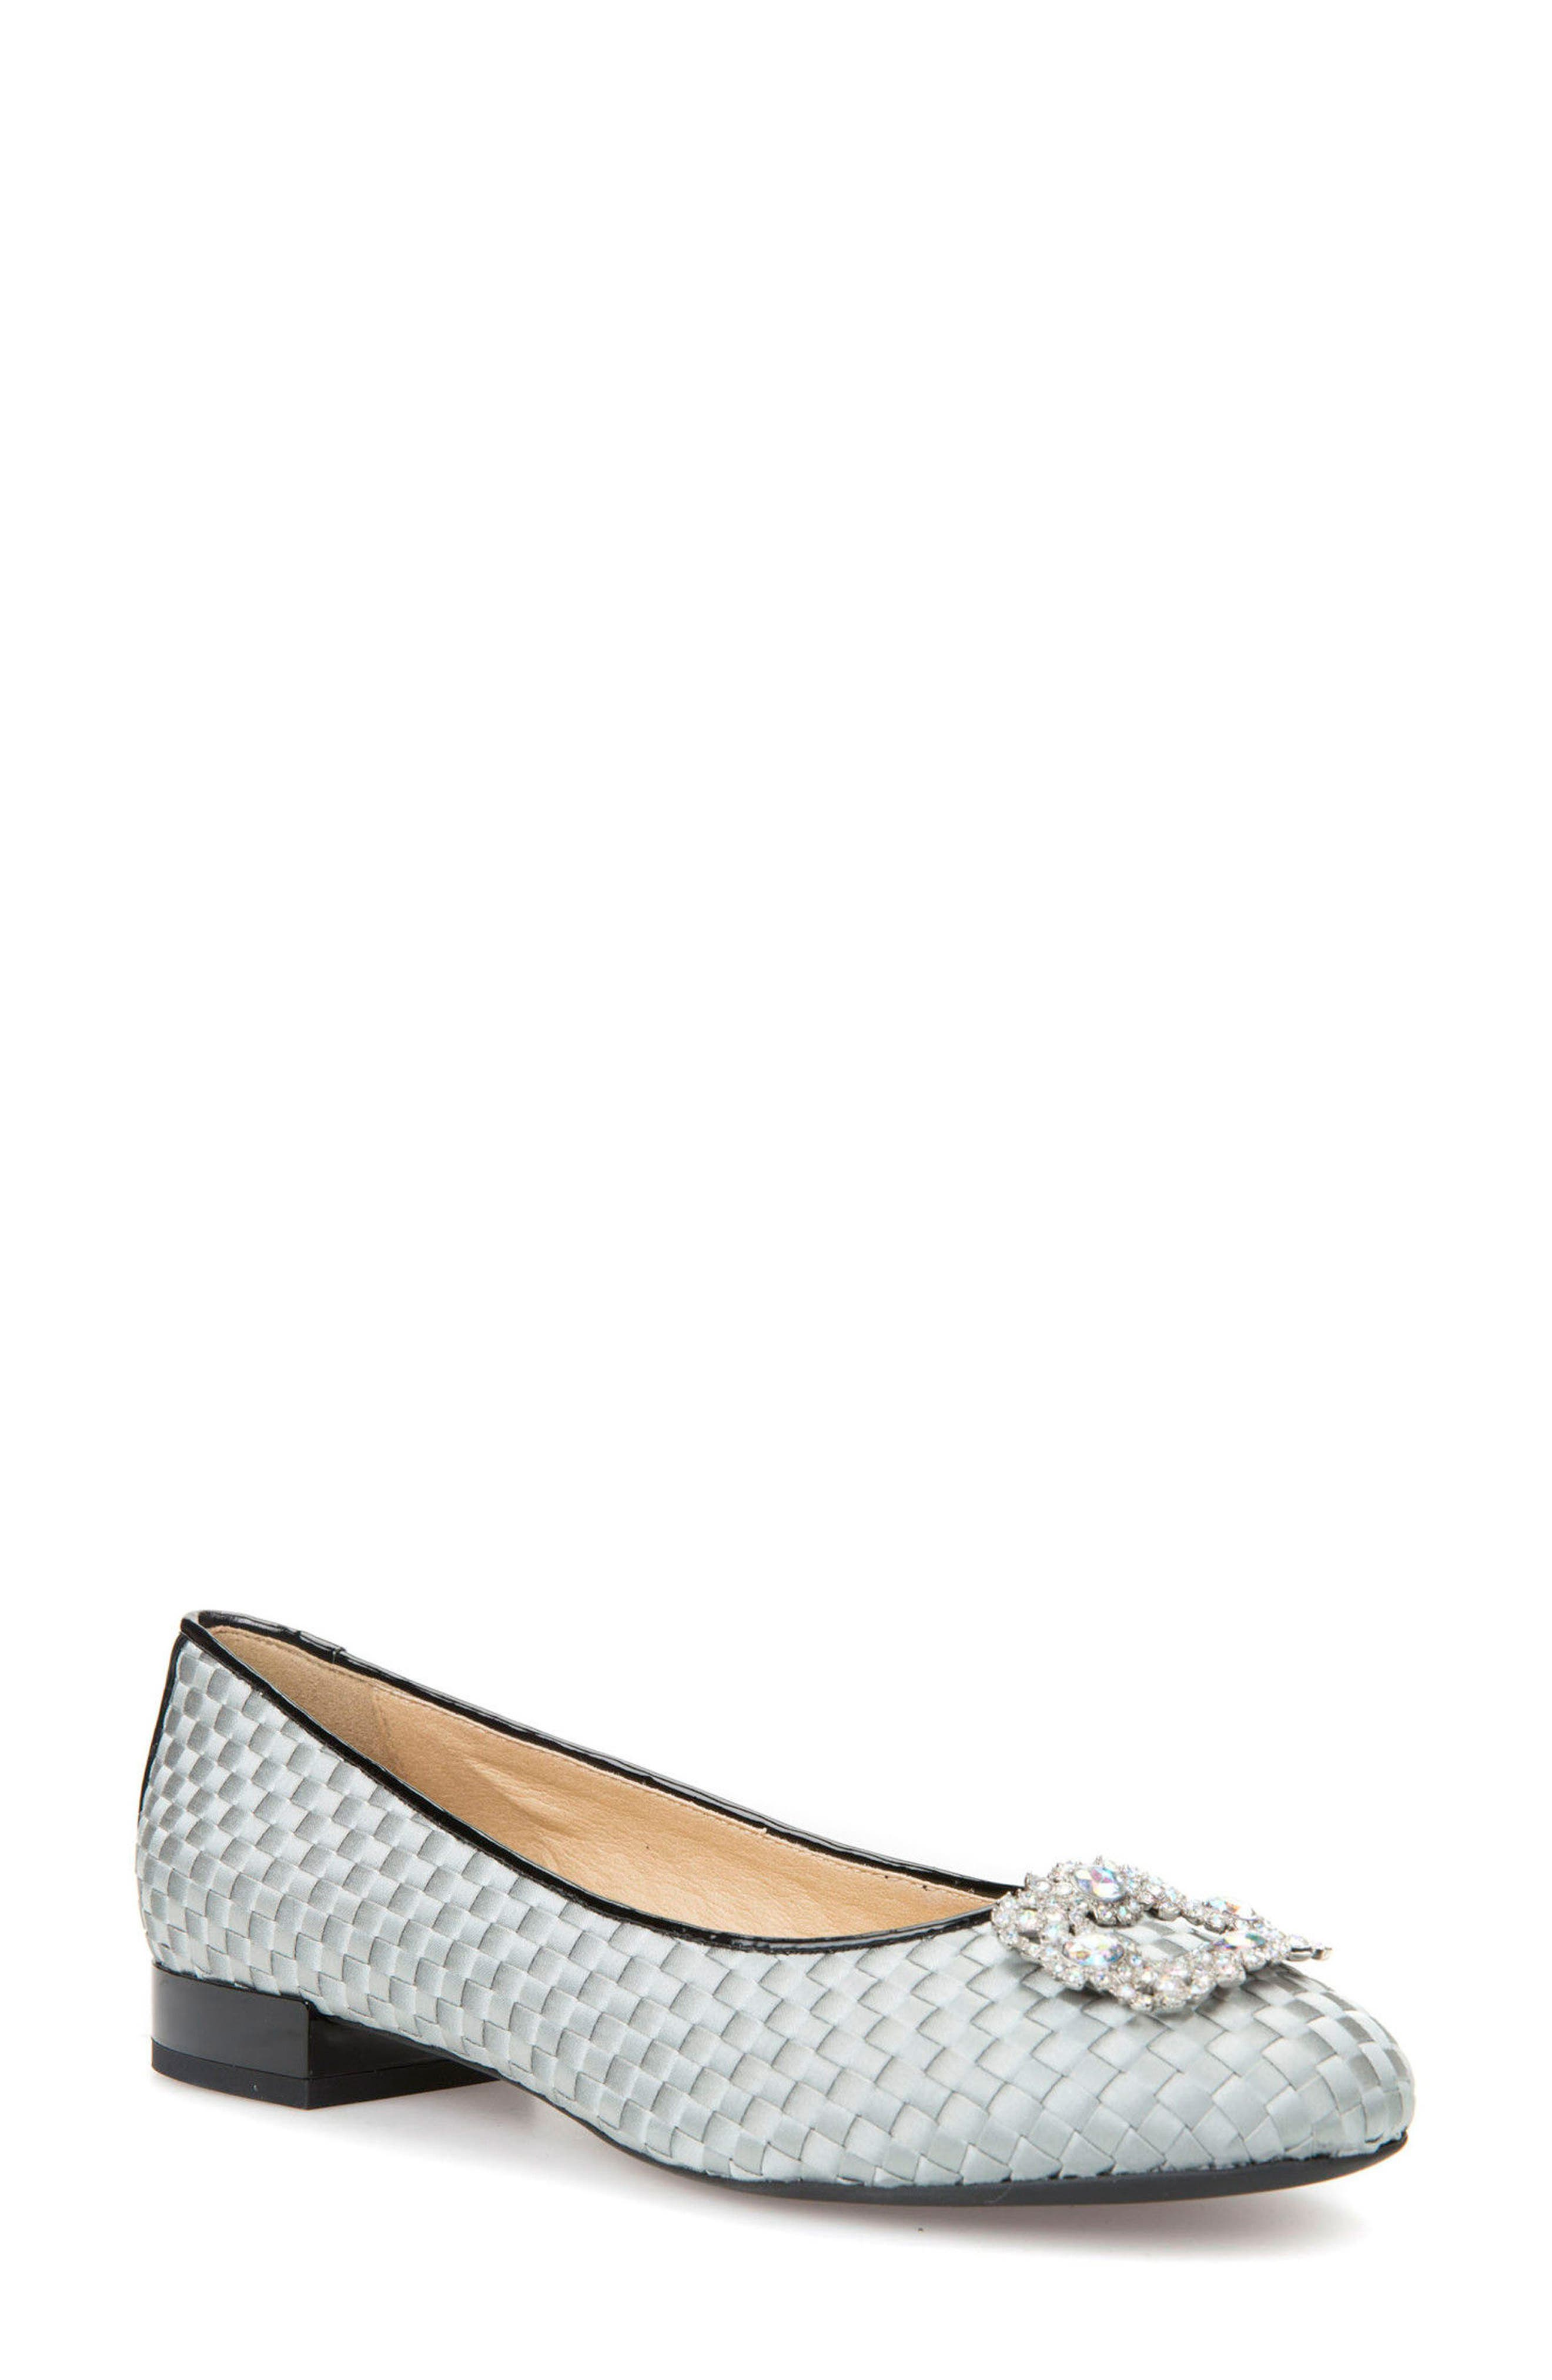 Wistrey Woven Embellished Slip-On,                             Main thumbnail 1, color,                             Light Green/ Black Fabric